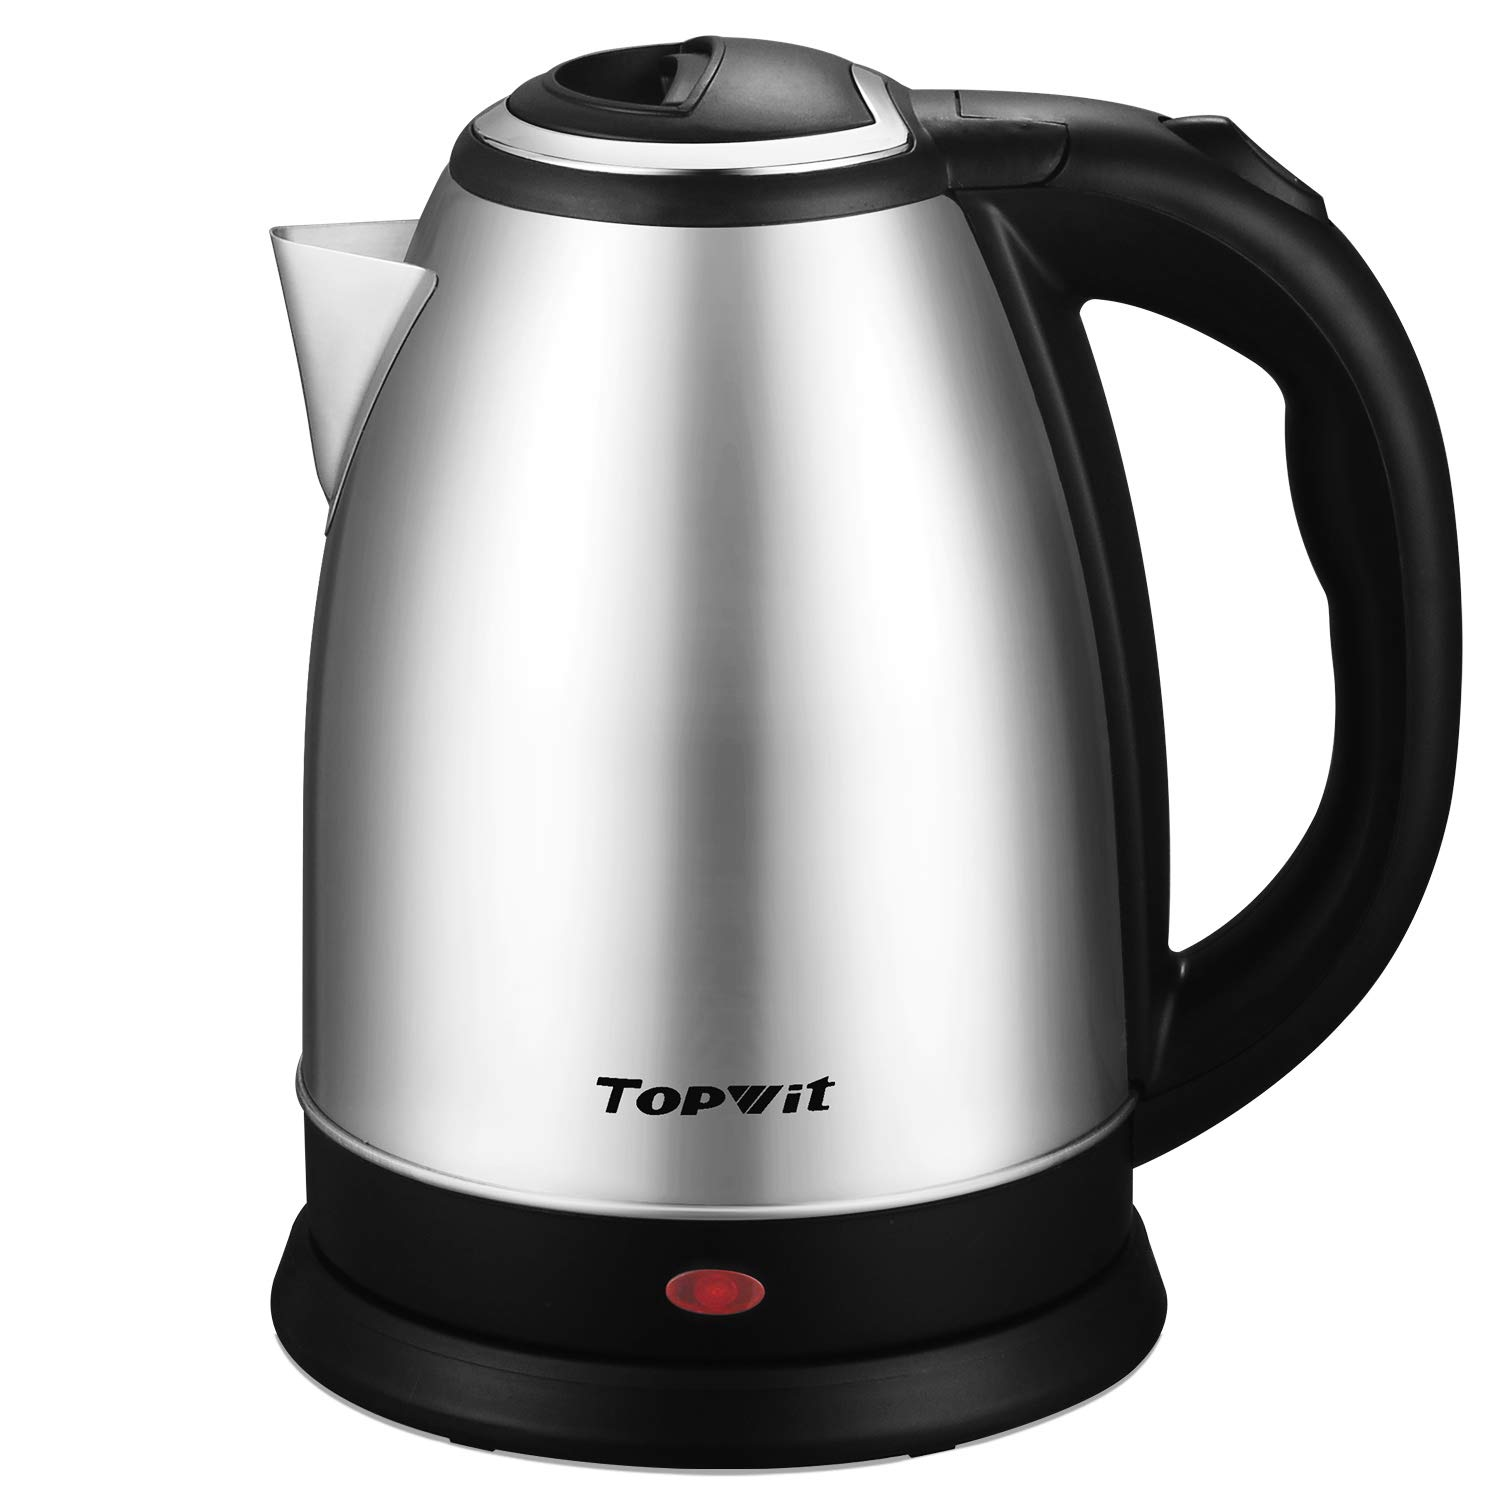 Topwit Electric Kettle Water Heater Boiler, 2 Liter Stainless Steel Coffee Kettle & Tea Pot, Water Warmer Cordless with Fast Boil, Auto Shut-Off & Boil Dry Protection, Upgraded by TOPWIT